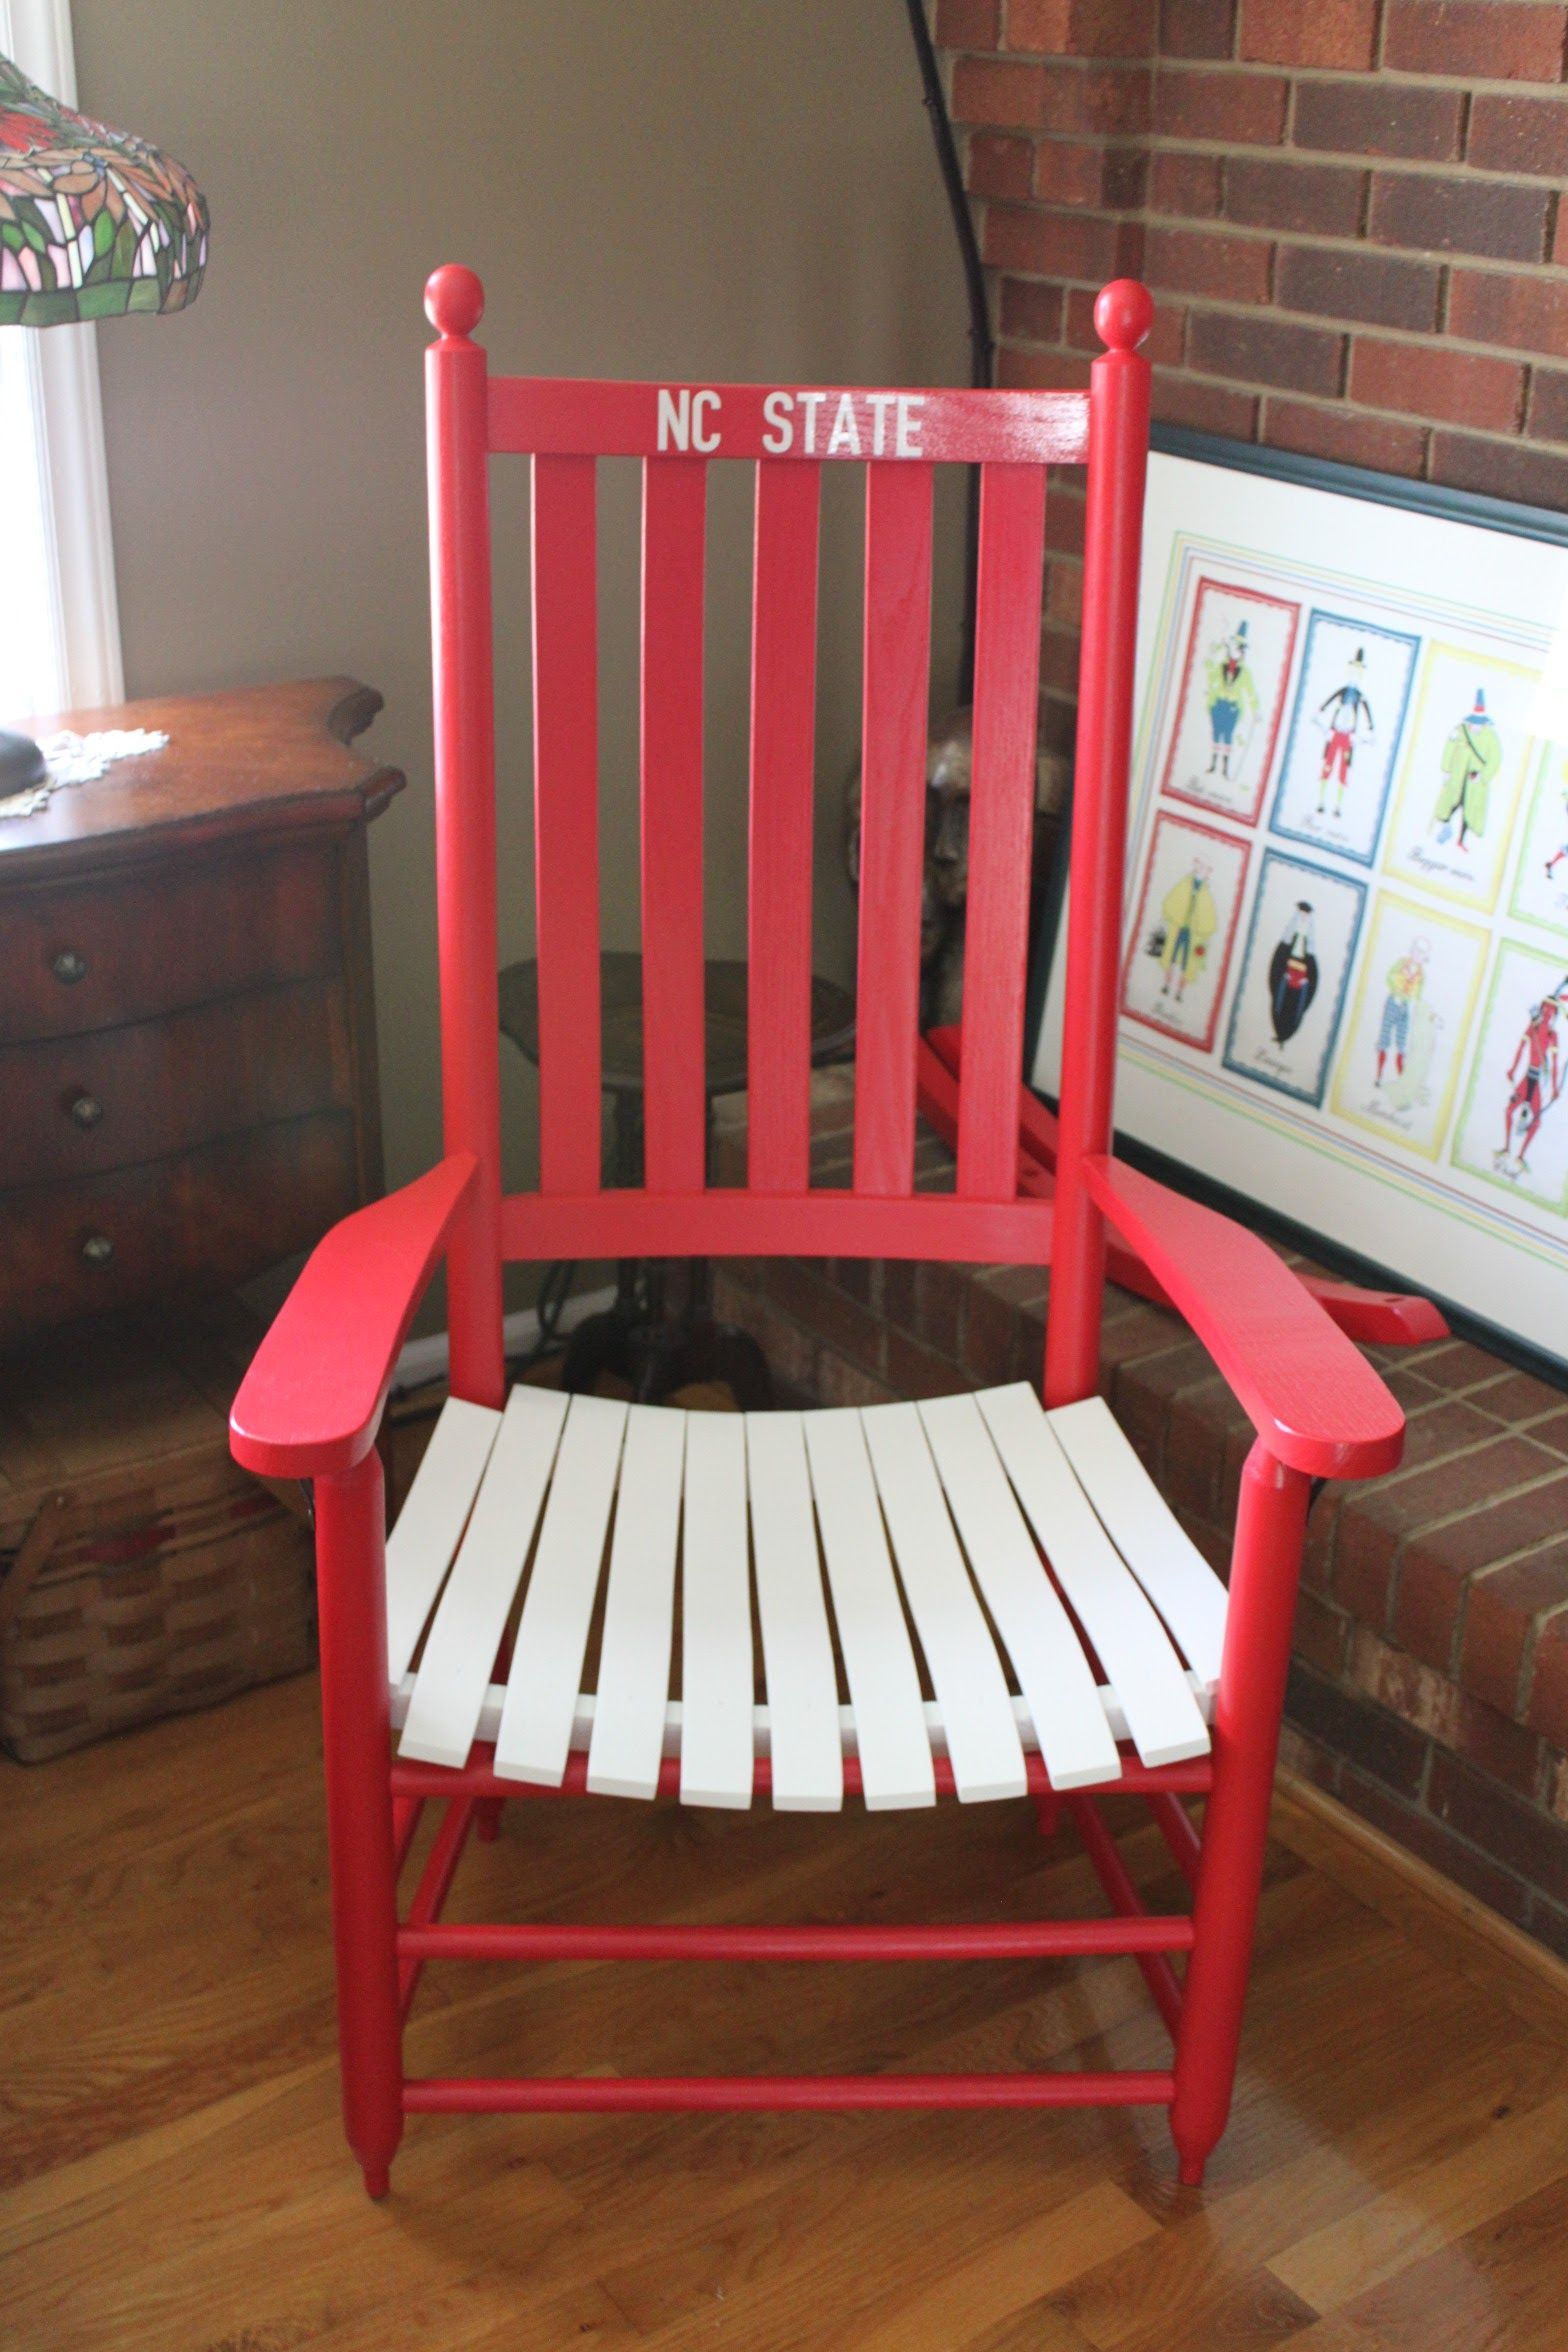 NC STATE UNIVERSITY Rocking Chair Custom Painted By The Painted Cubbard. Unfinished  Rocker By Troutman